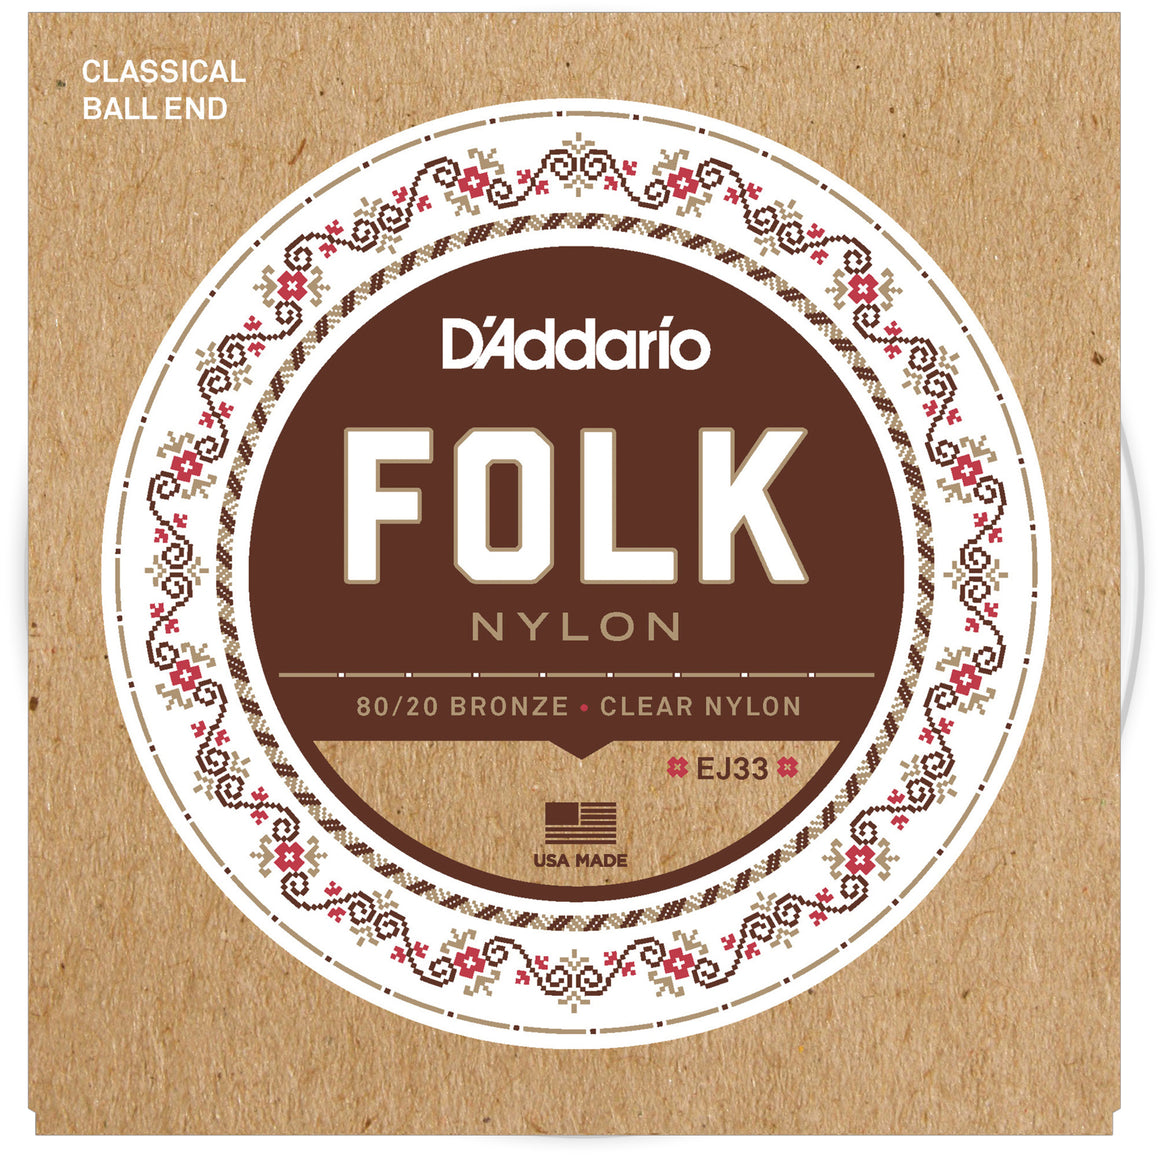 D'Addario EJ33 Folk Nylon Classical Guitar Strings